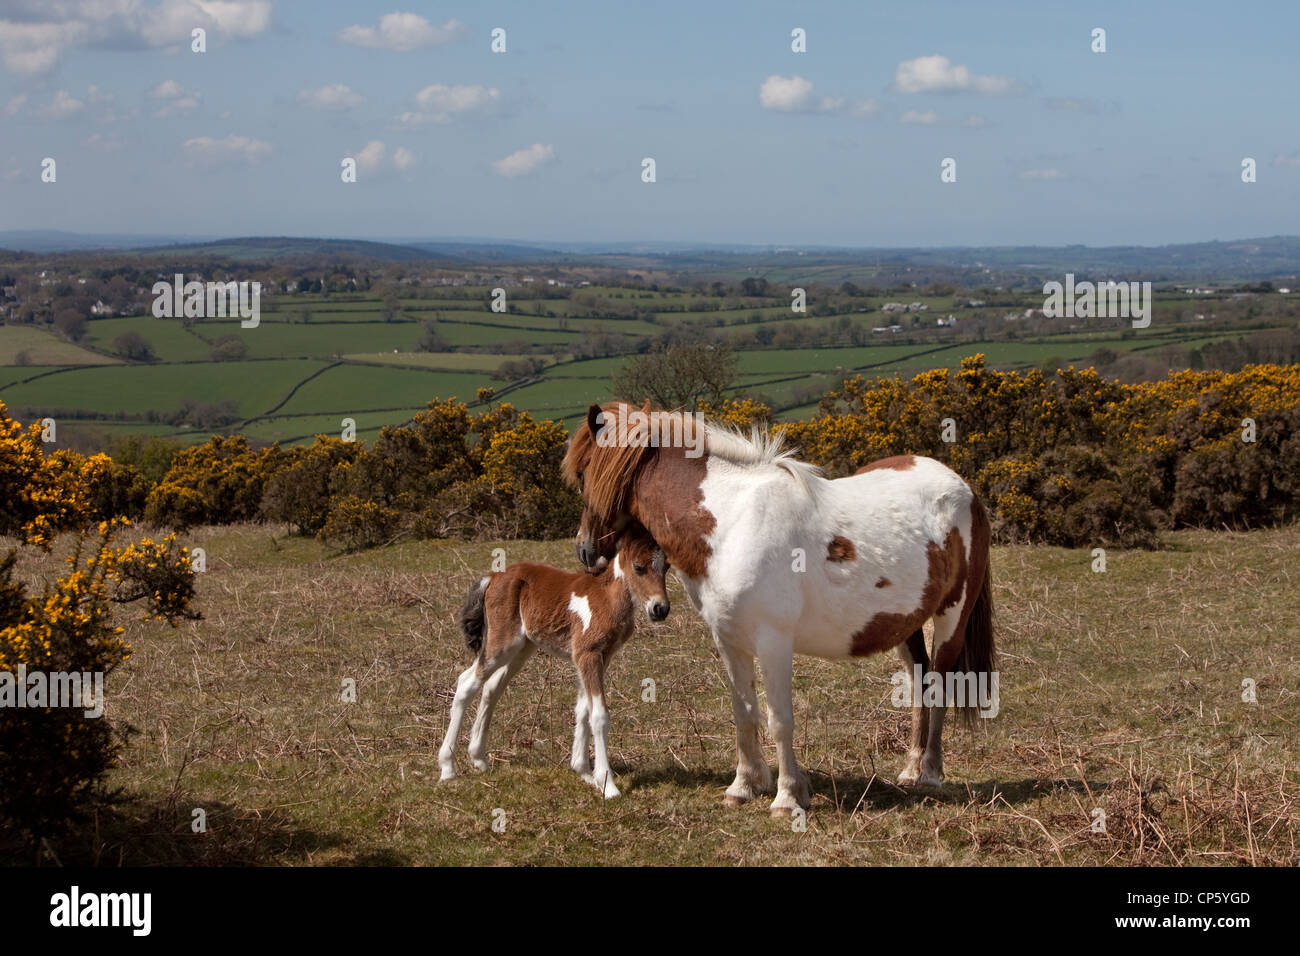 A Dartmoor Pony and young foal relax in the sun above the village of Meavy, Dartmoor, Devon UK. - Stock Image